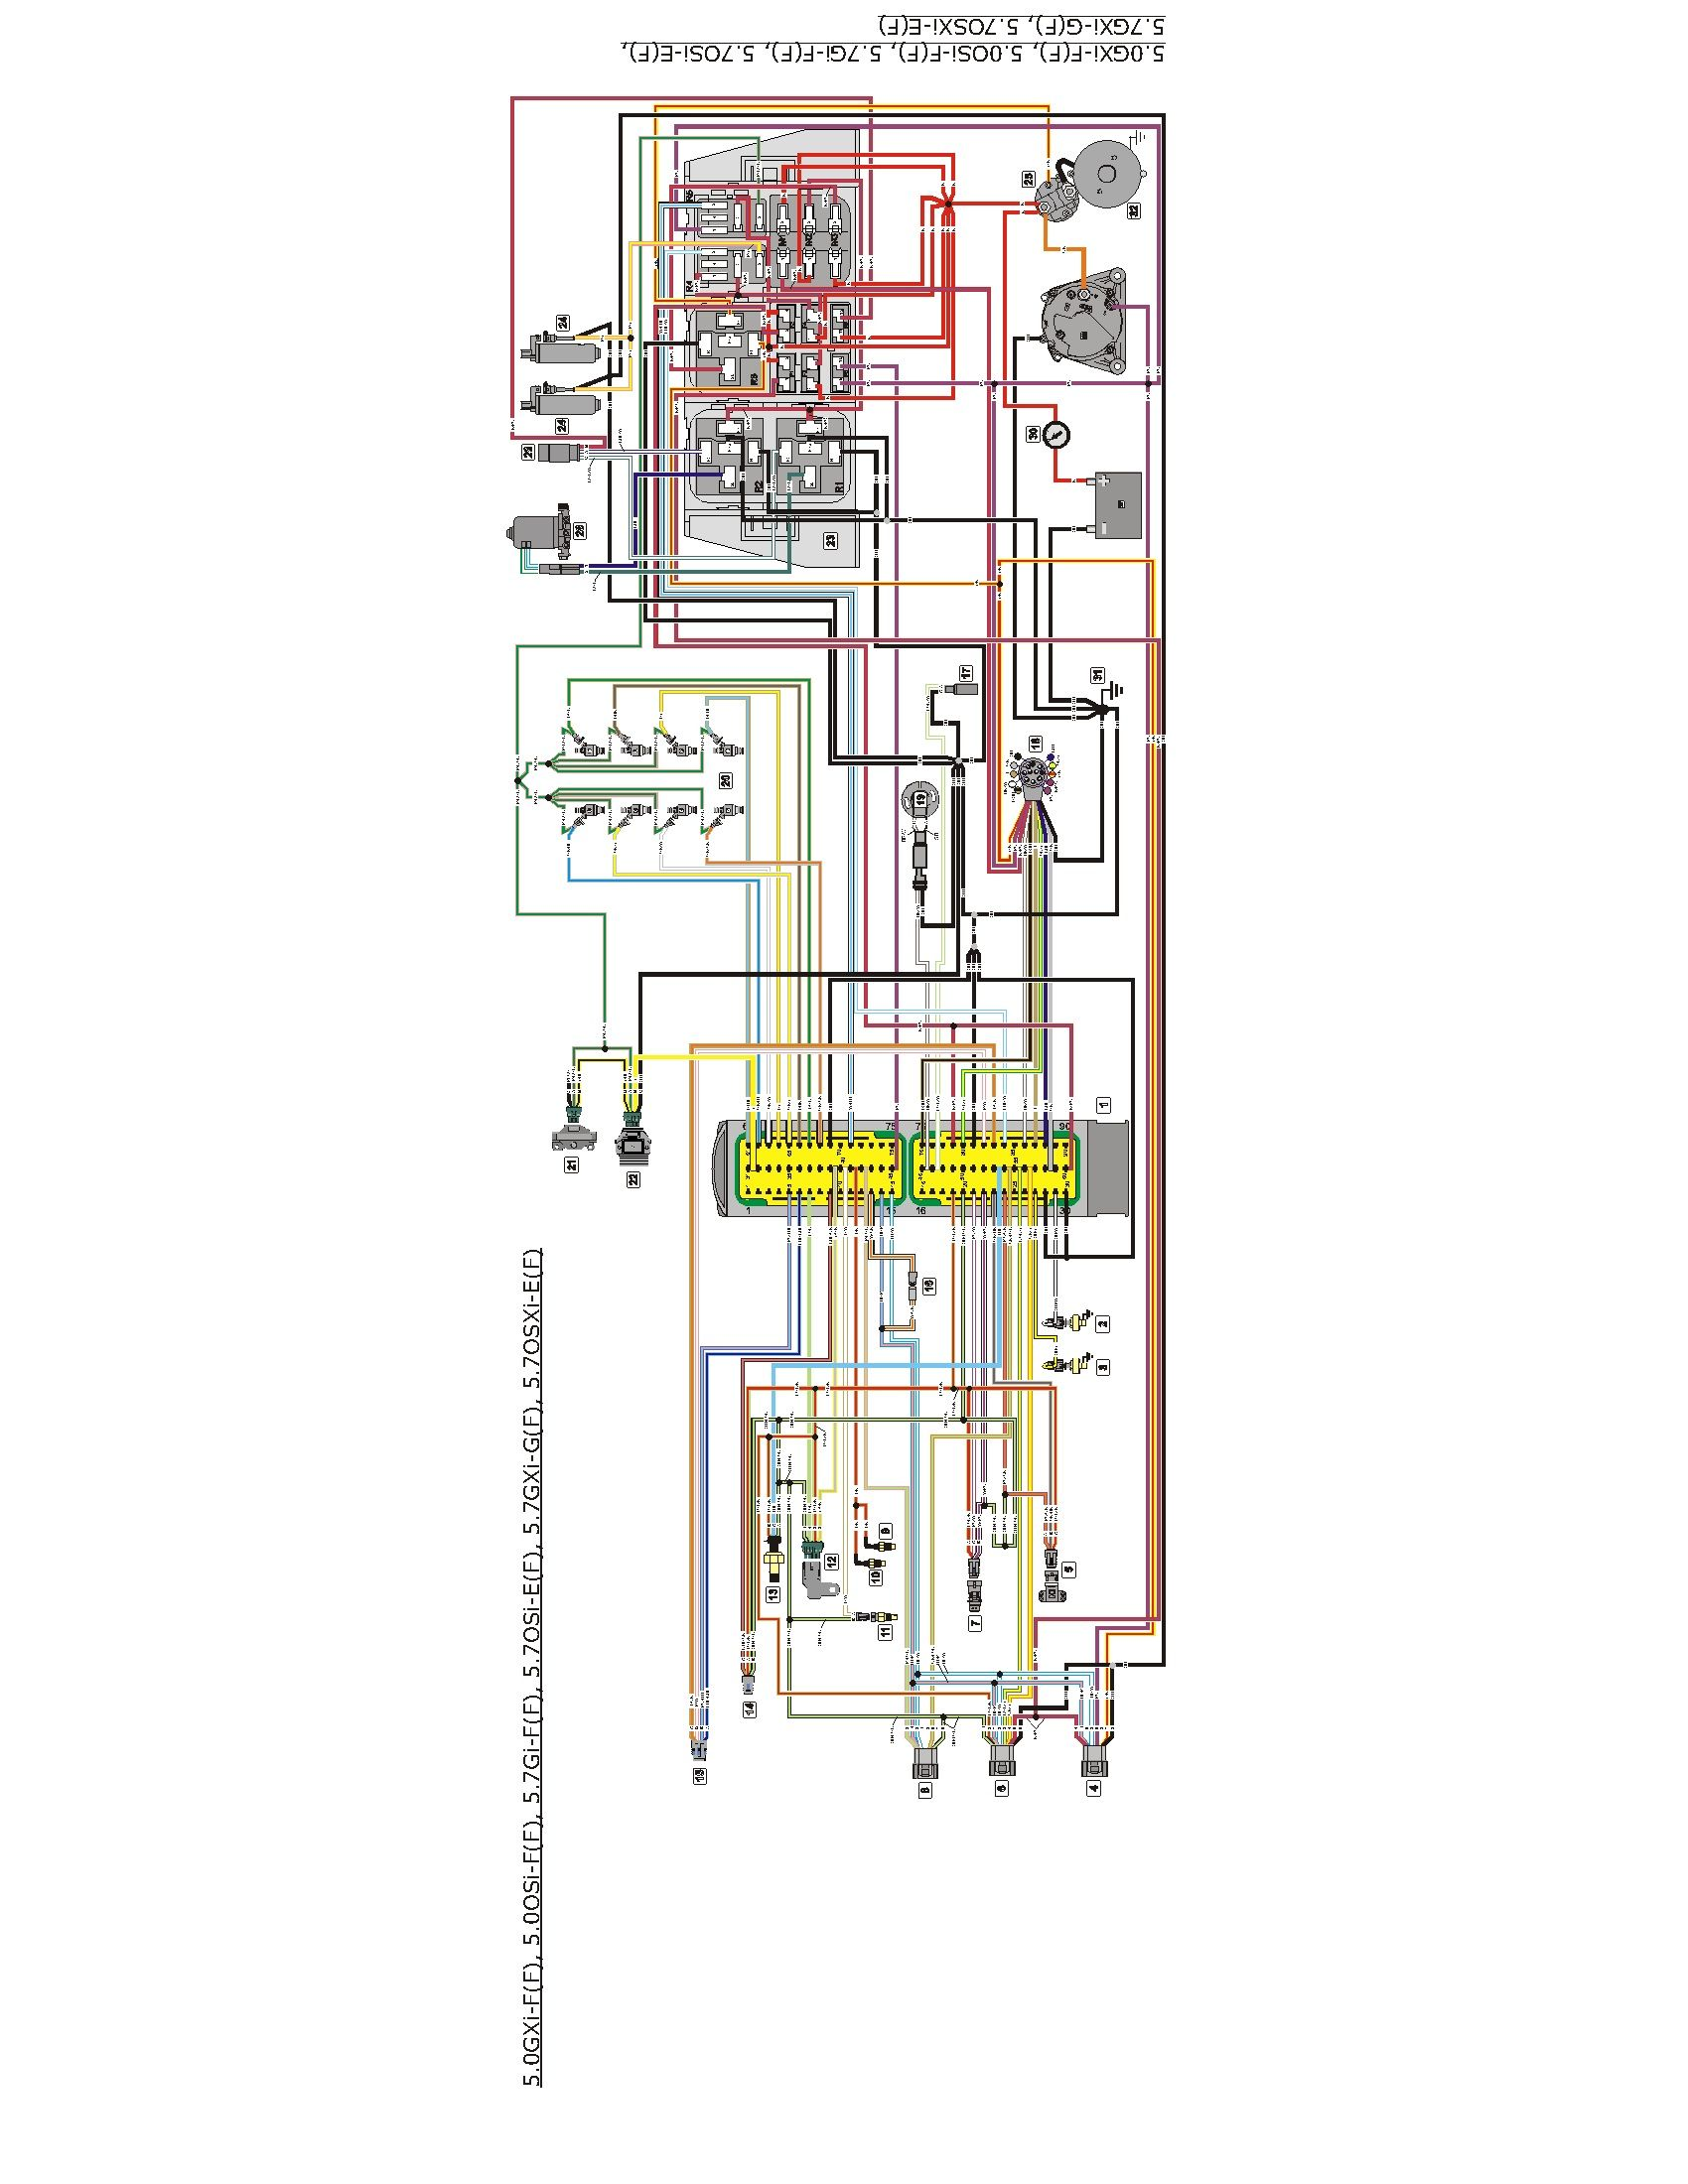 38e0106861e0fe47e508530985b32839 volvo penta 5 7 engine wiring diagram yate pinterest volvo volvo penta wiring harness diagram at highcare.asia